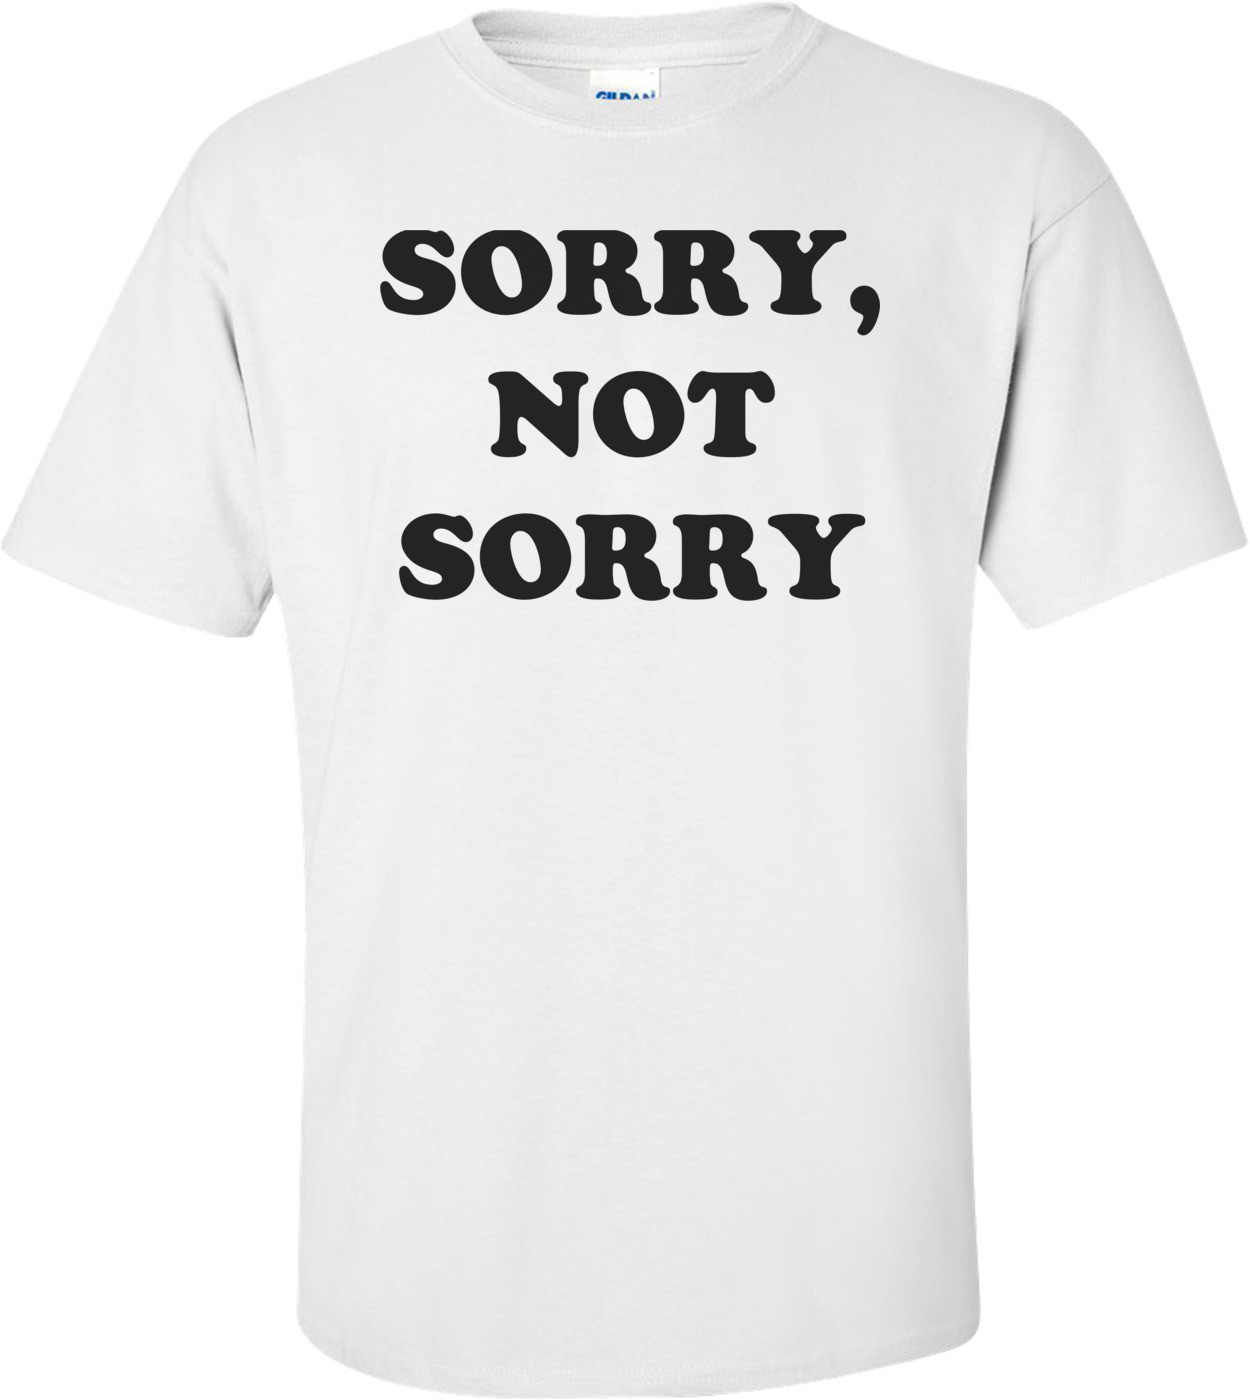 SORRY, NOT SORRY Shirt